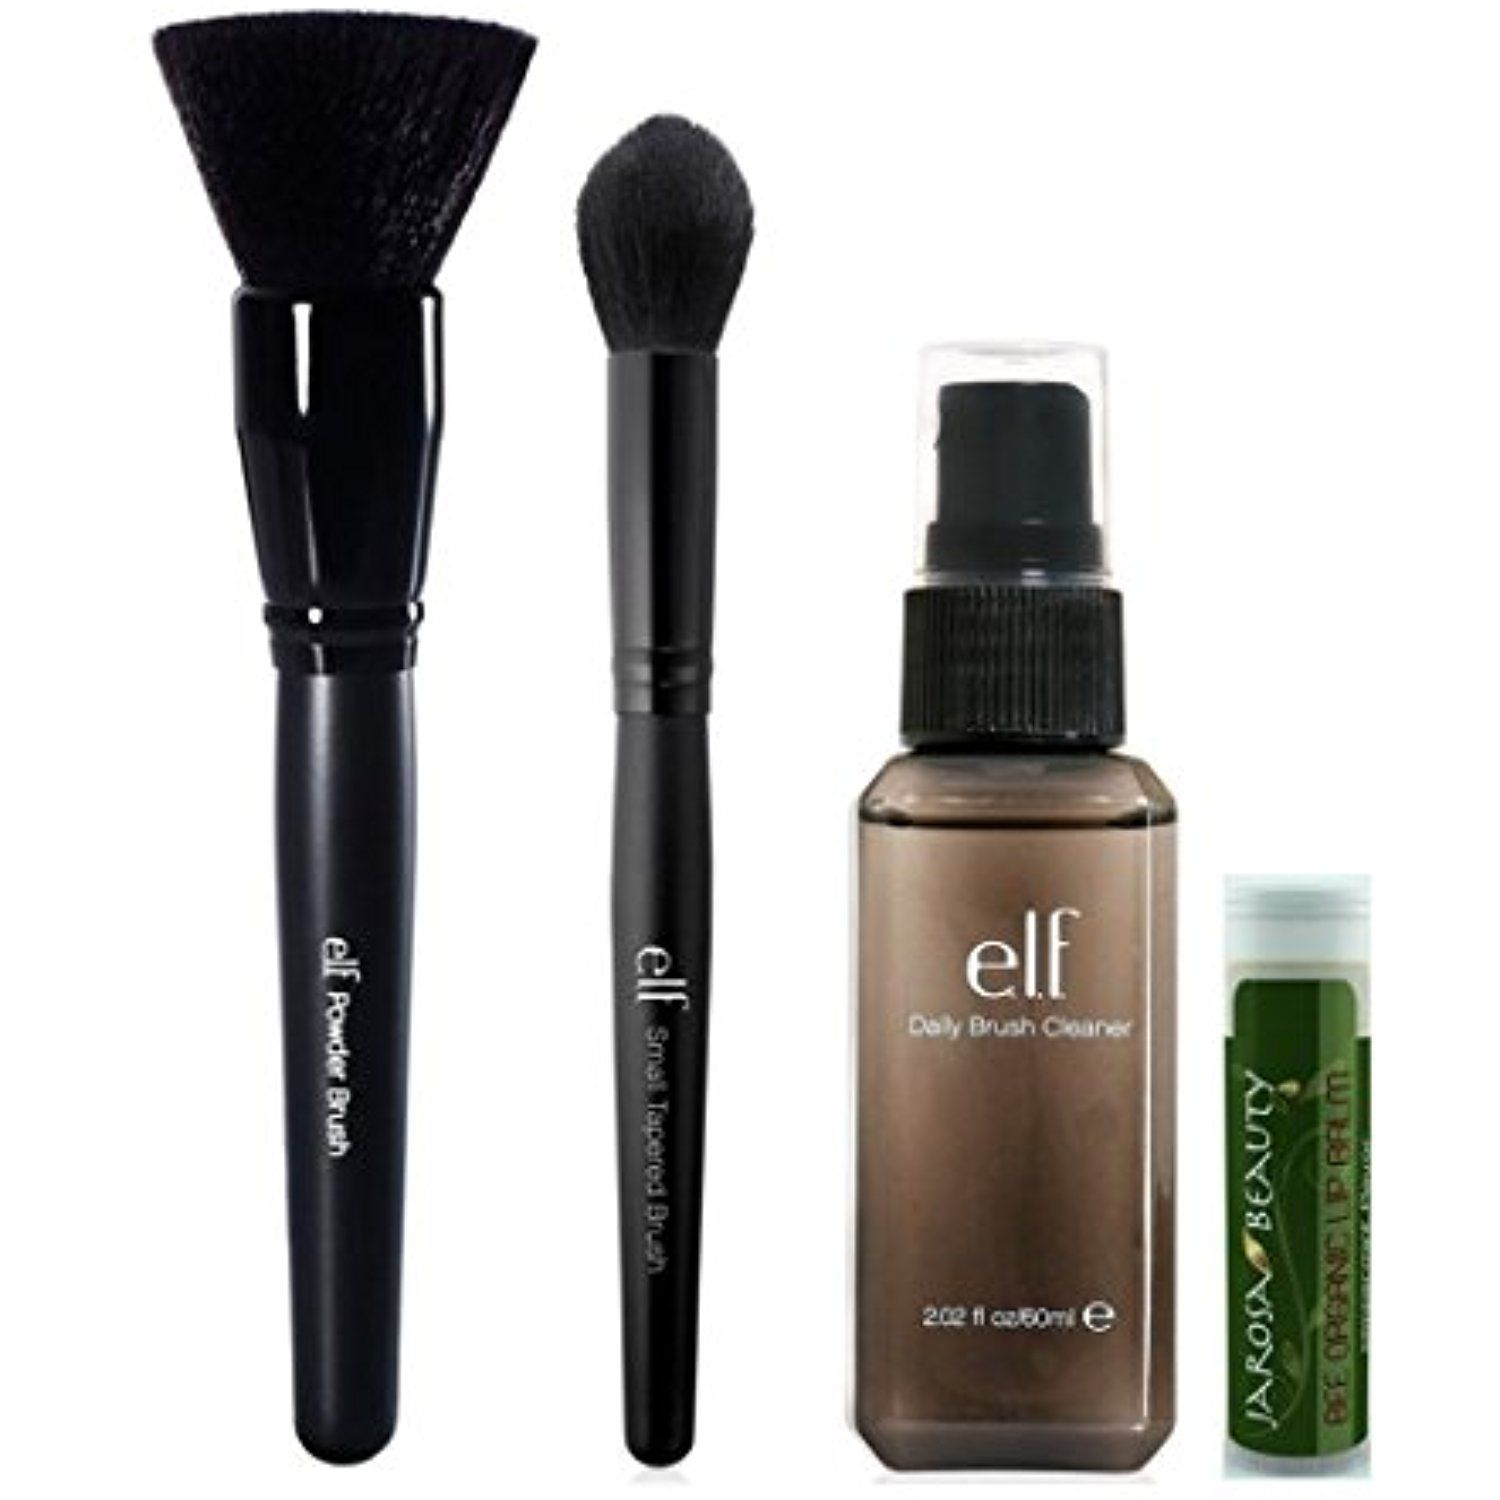 e.l.f. Cosmetics Makeup Brush Set Daily Brush Cleaner 2